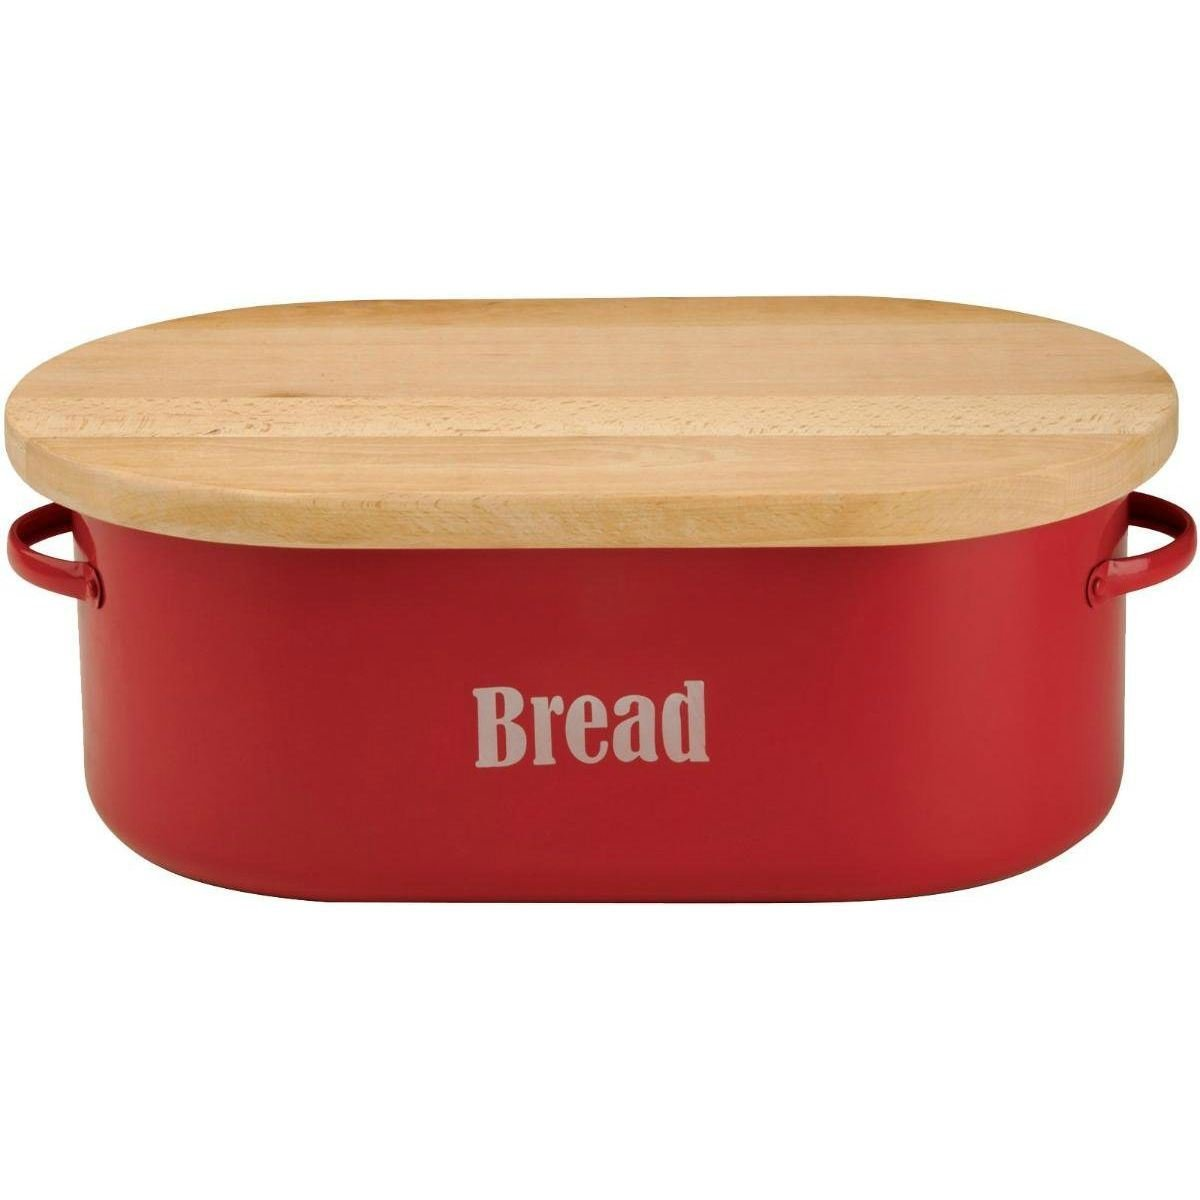 Typhoon Vintage Kitchen Breadcrock Red Bread Bin (Pack of 2) by Typhoon